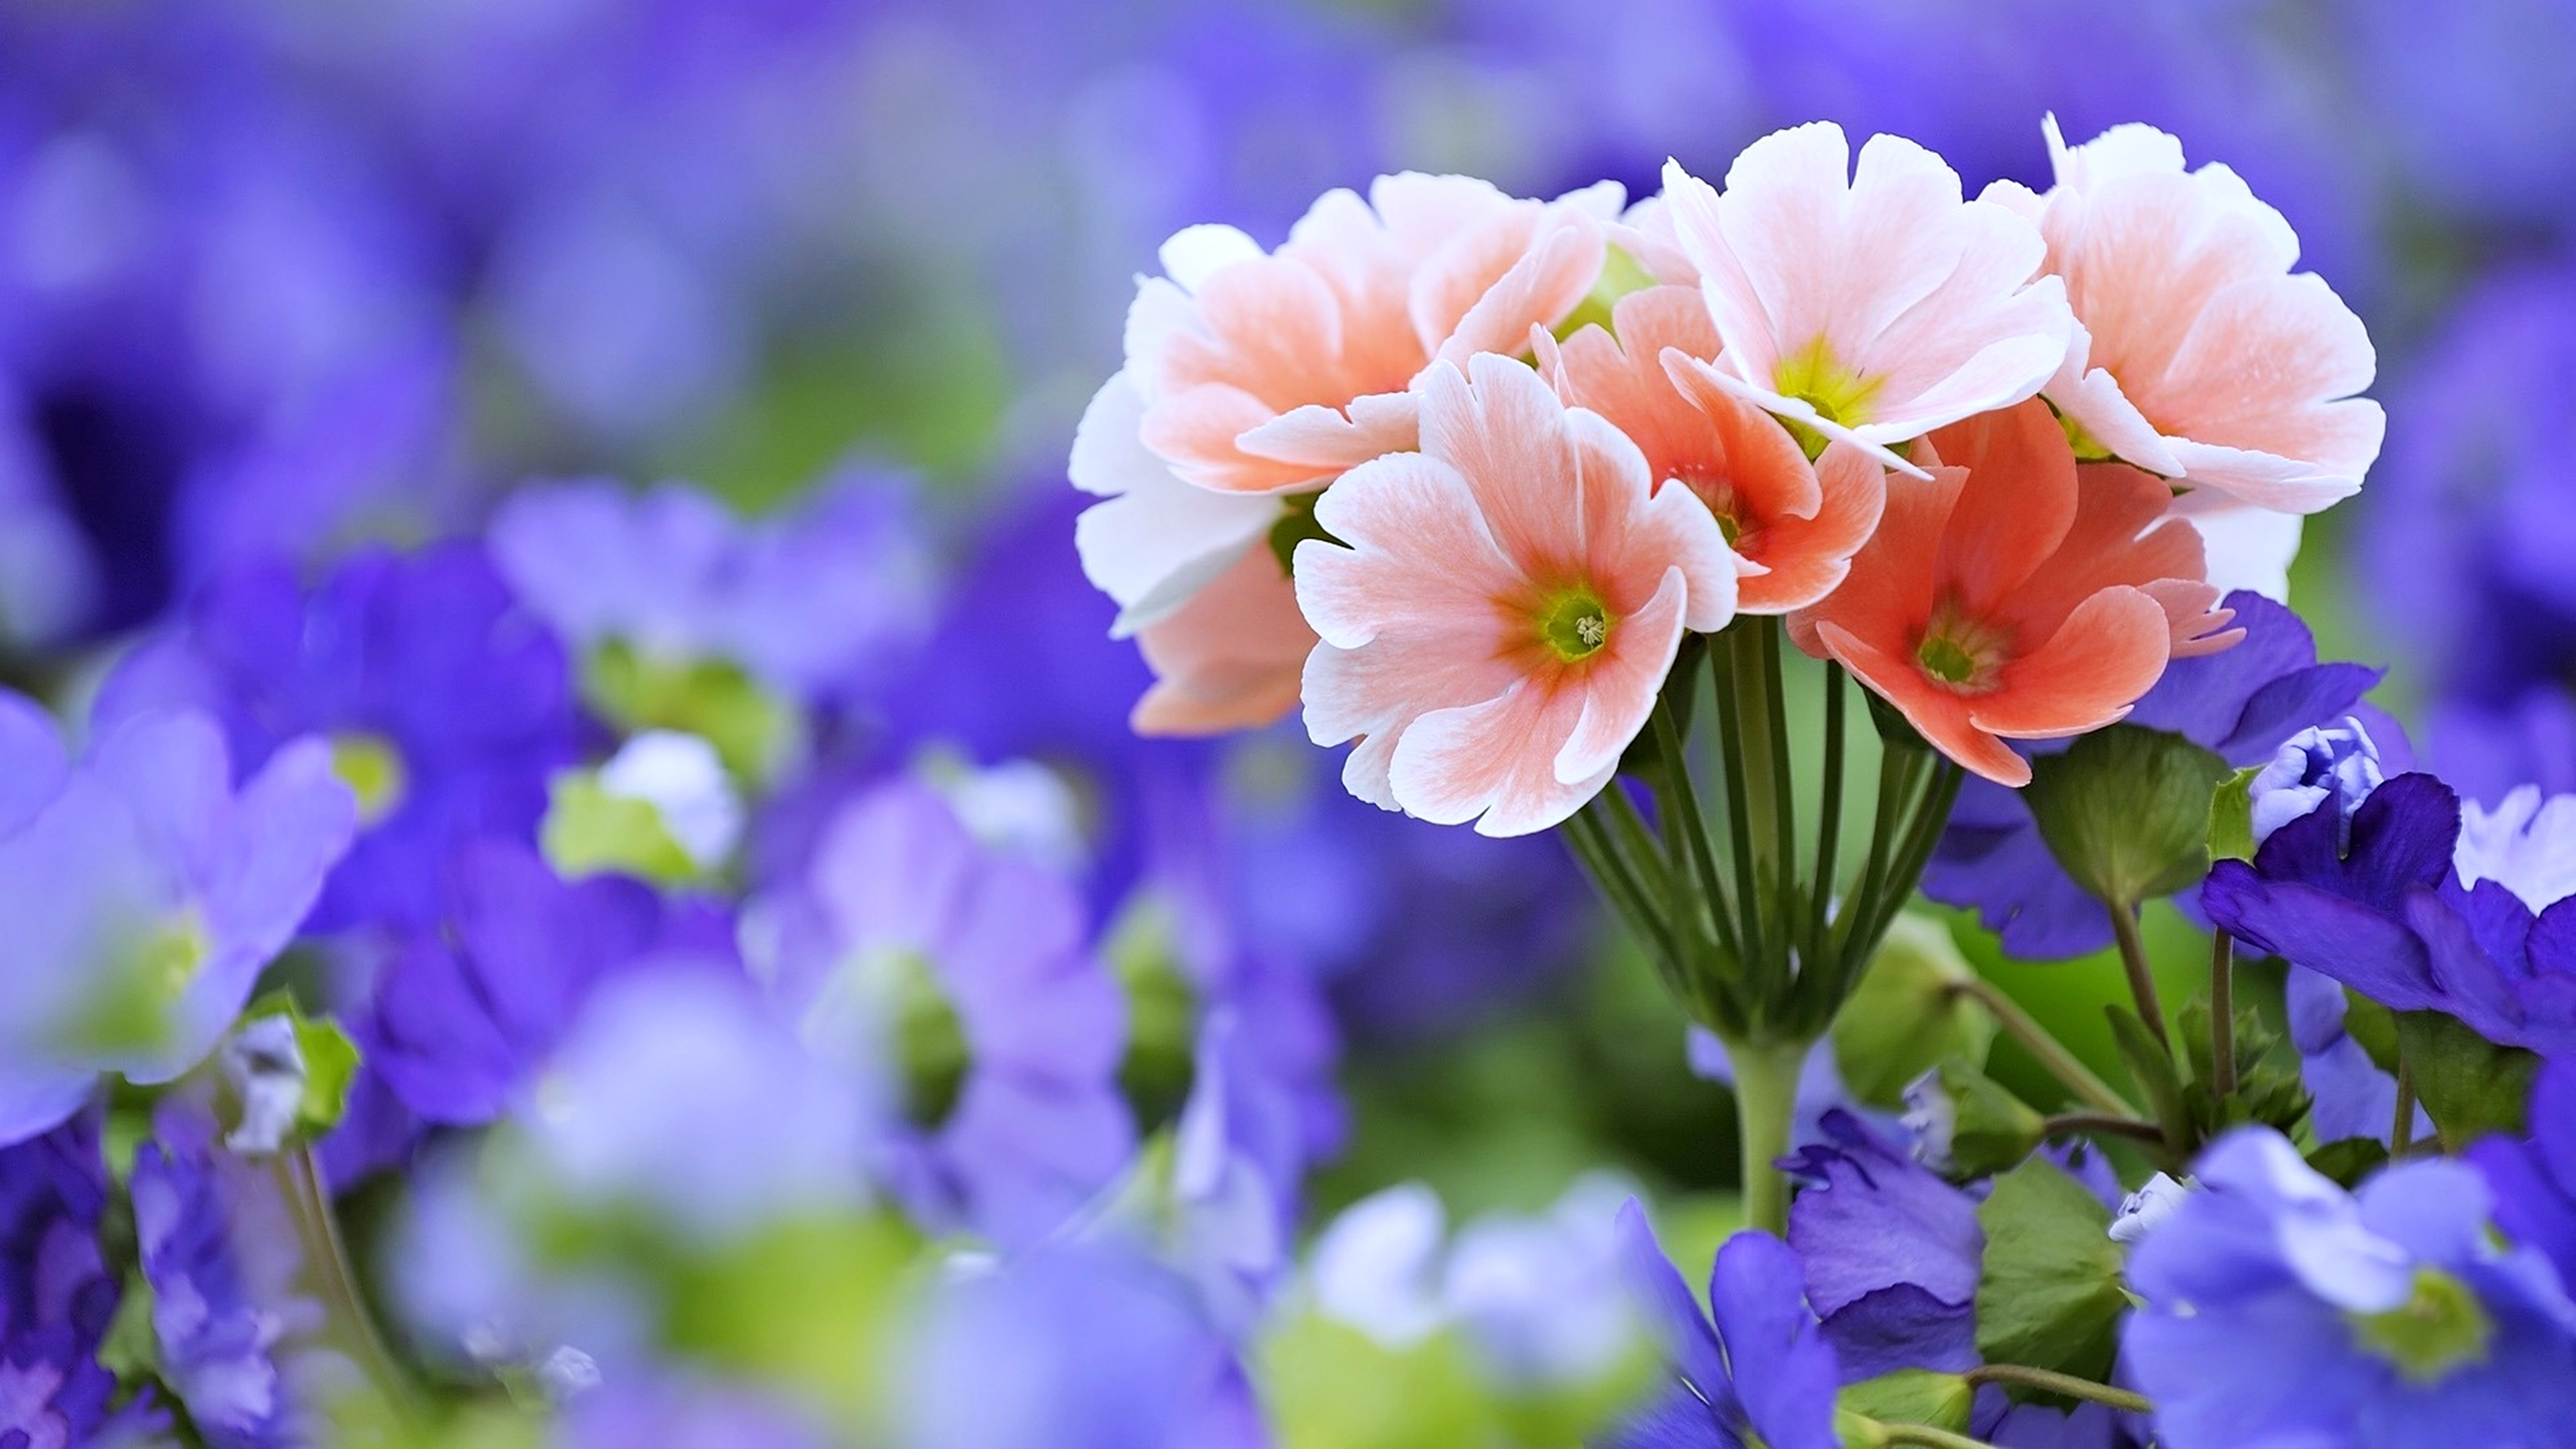 13954 flowers hd wallpapers | background images - wallpaper abyss